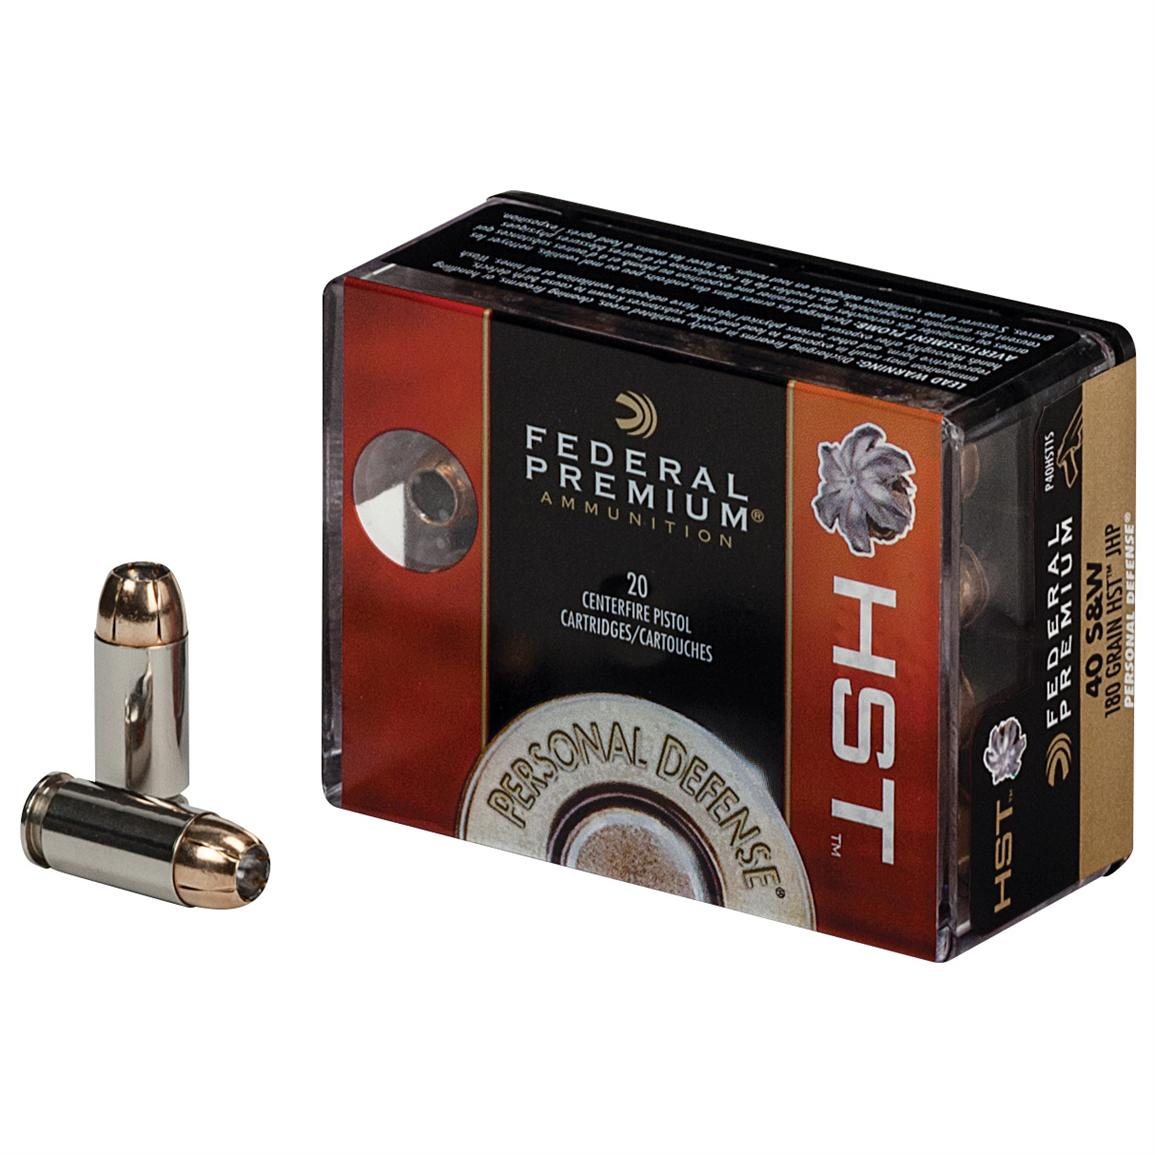 20 rds. Federal Premium Personal Defense® HST Ammo. (Box photoed is for illustrative purposes only, offer is for Federal Premium 9mm Luger)